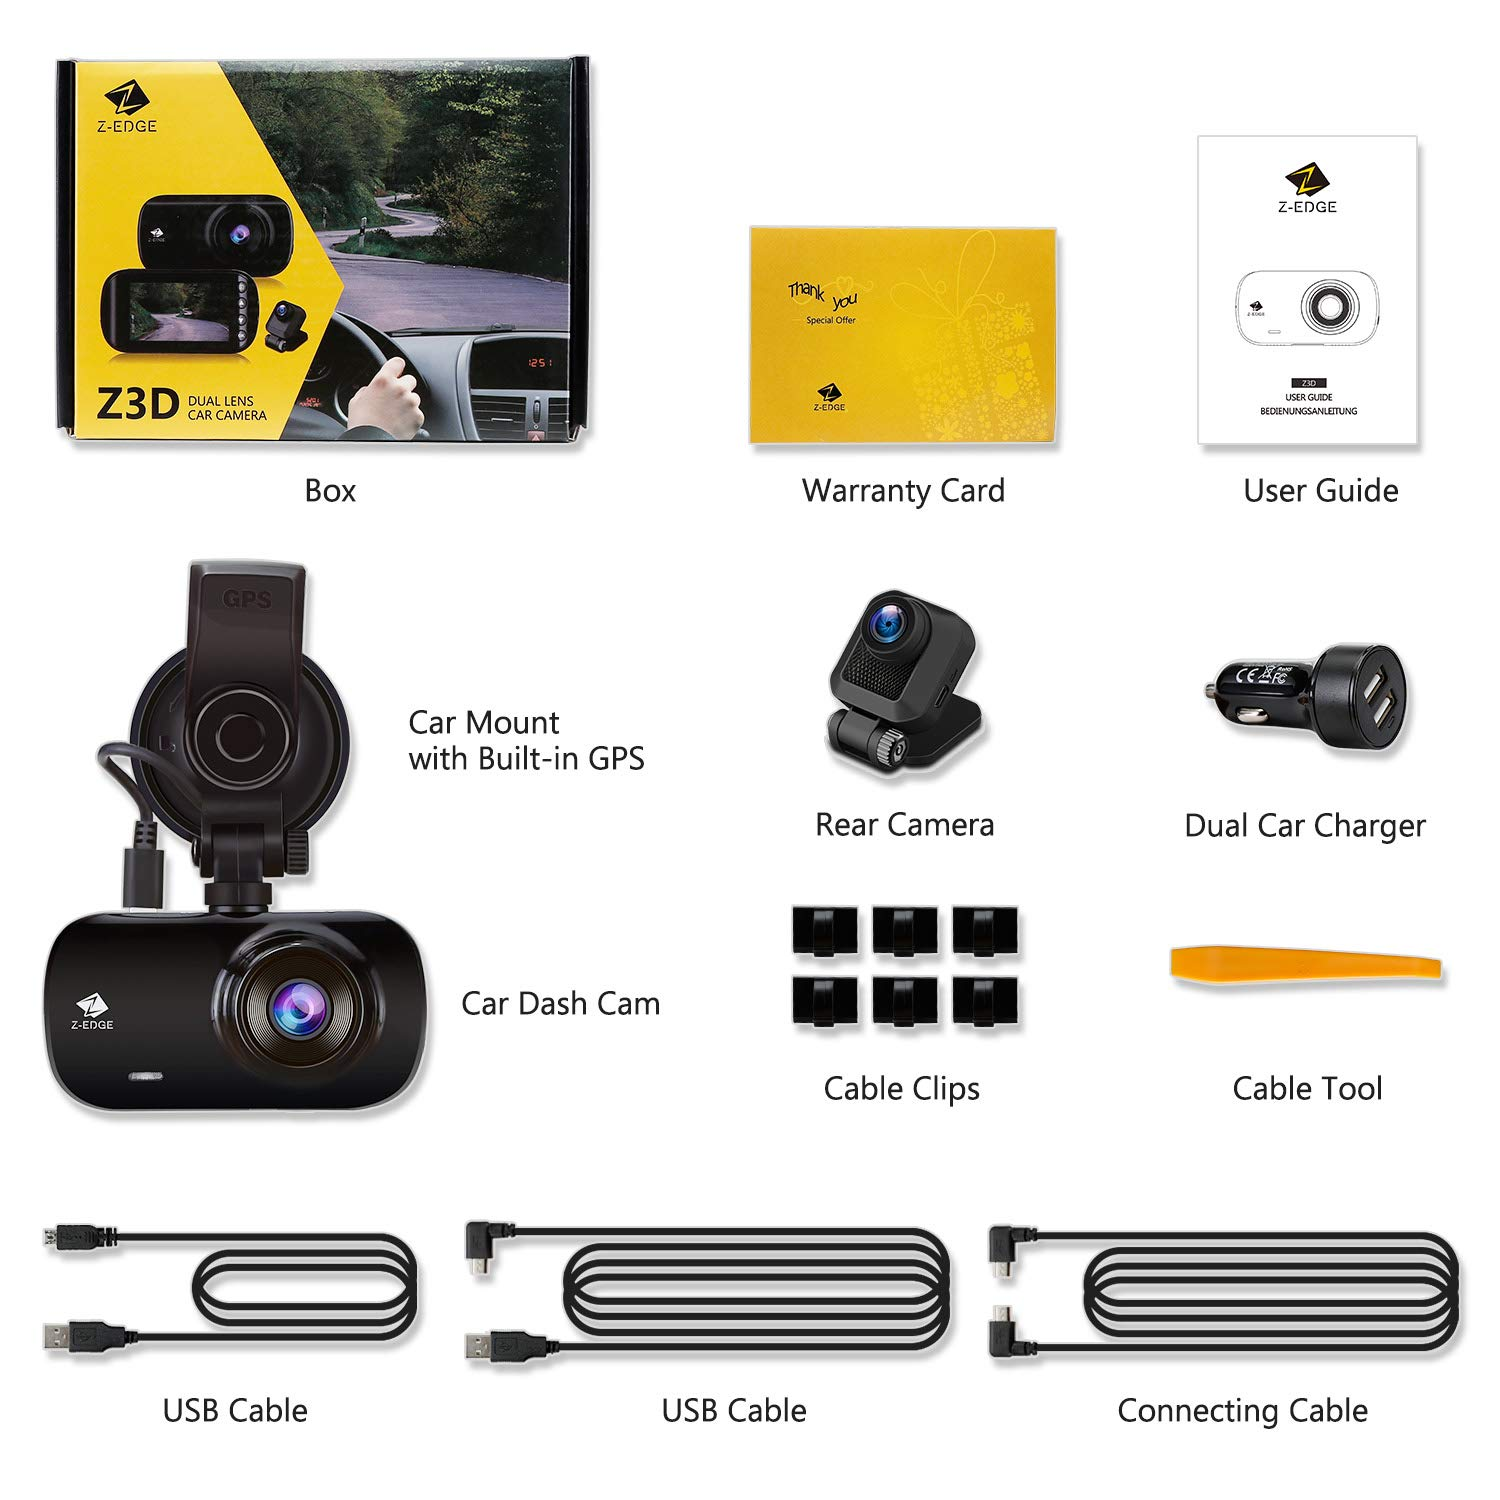 Z-Edge Z3D Dual Lens Dash Cam, 2.7'' Screen Ultra HD 1440P Front & 1080P Rear 150 Degree Wide Angle Front and Rear Dash Cam, Dashboard Camera with GPS, WDR, Low Light Vision, Parking Mode, G-Sensor by Z Z-Edge (Image #7)